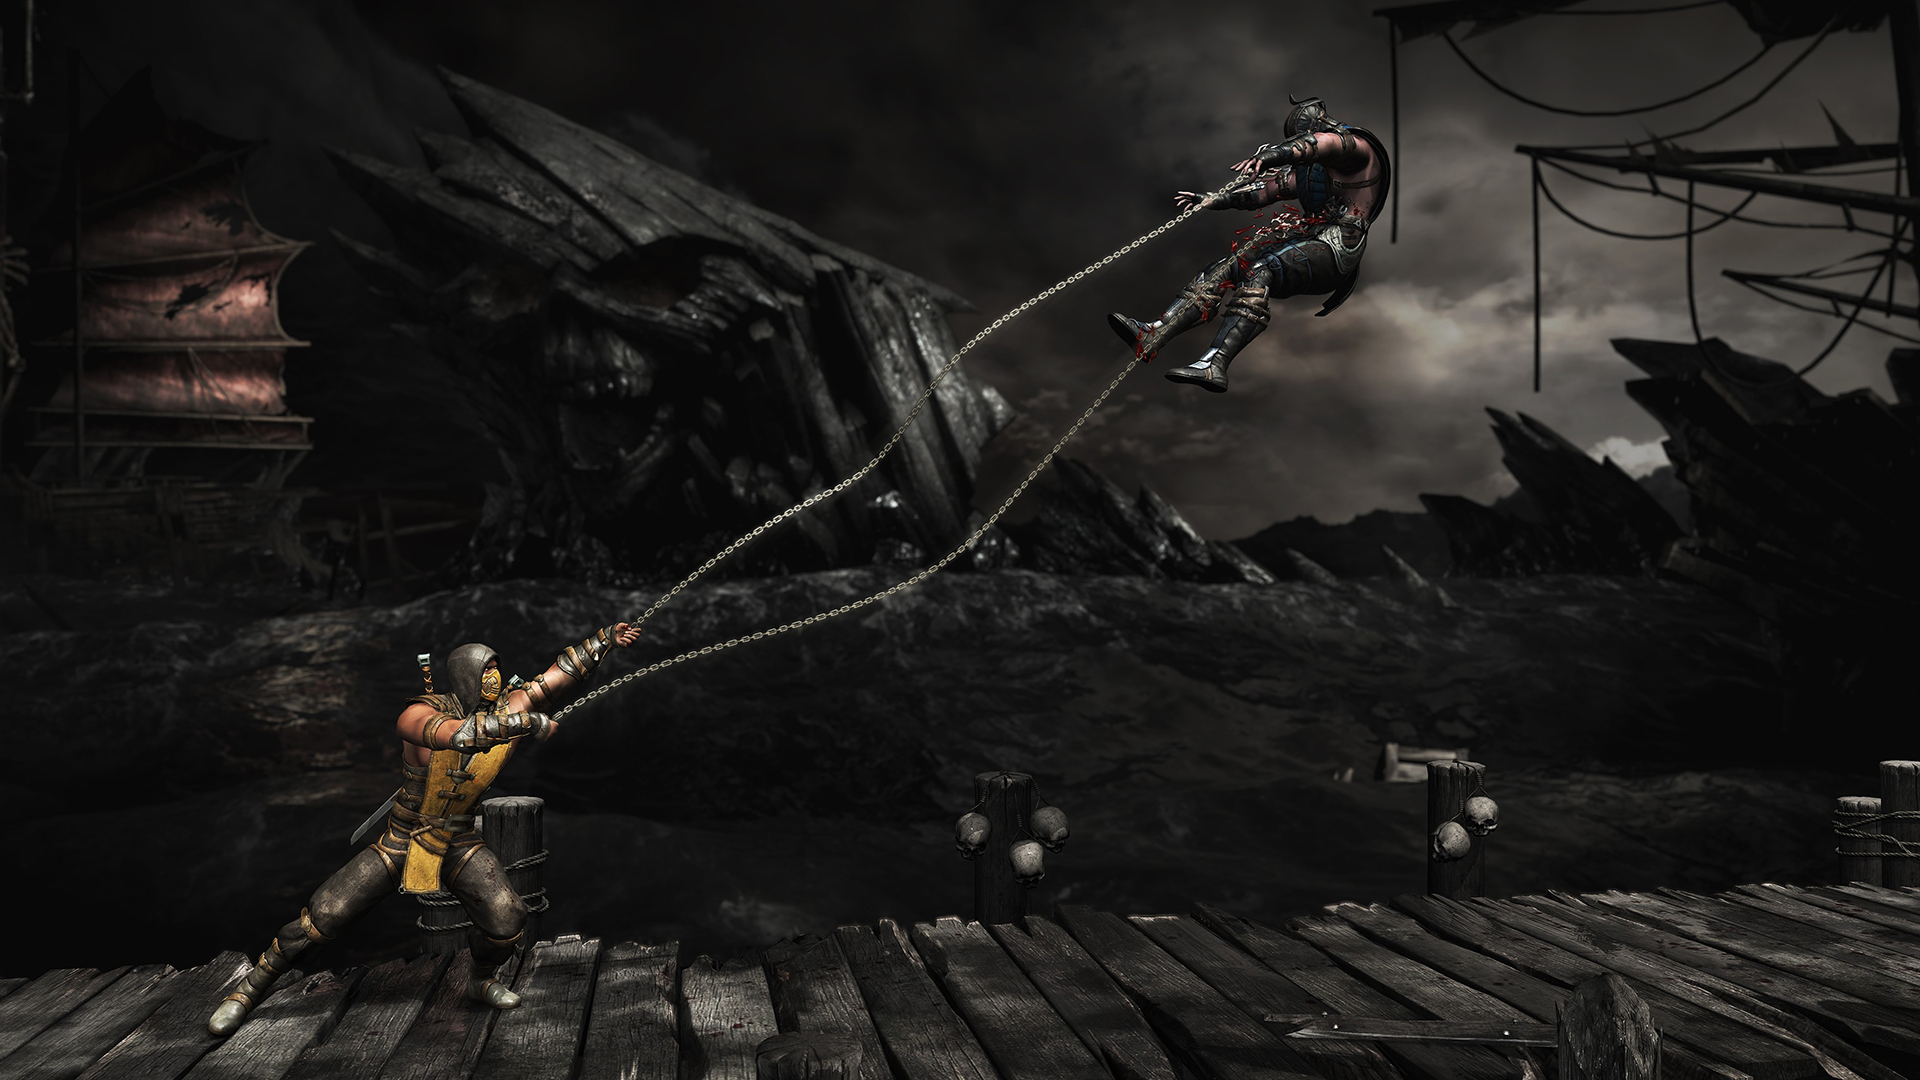 Mortal Kombat X Scorpion Spear Swing Gameplay Screenshot